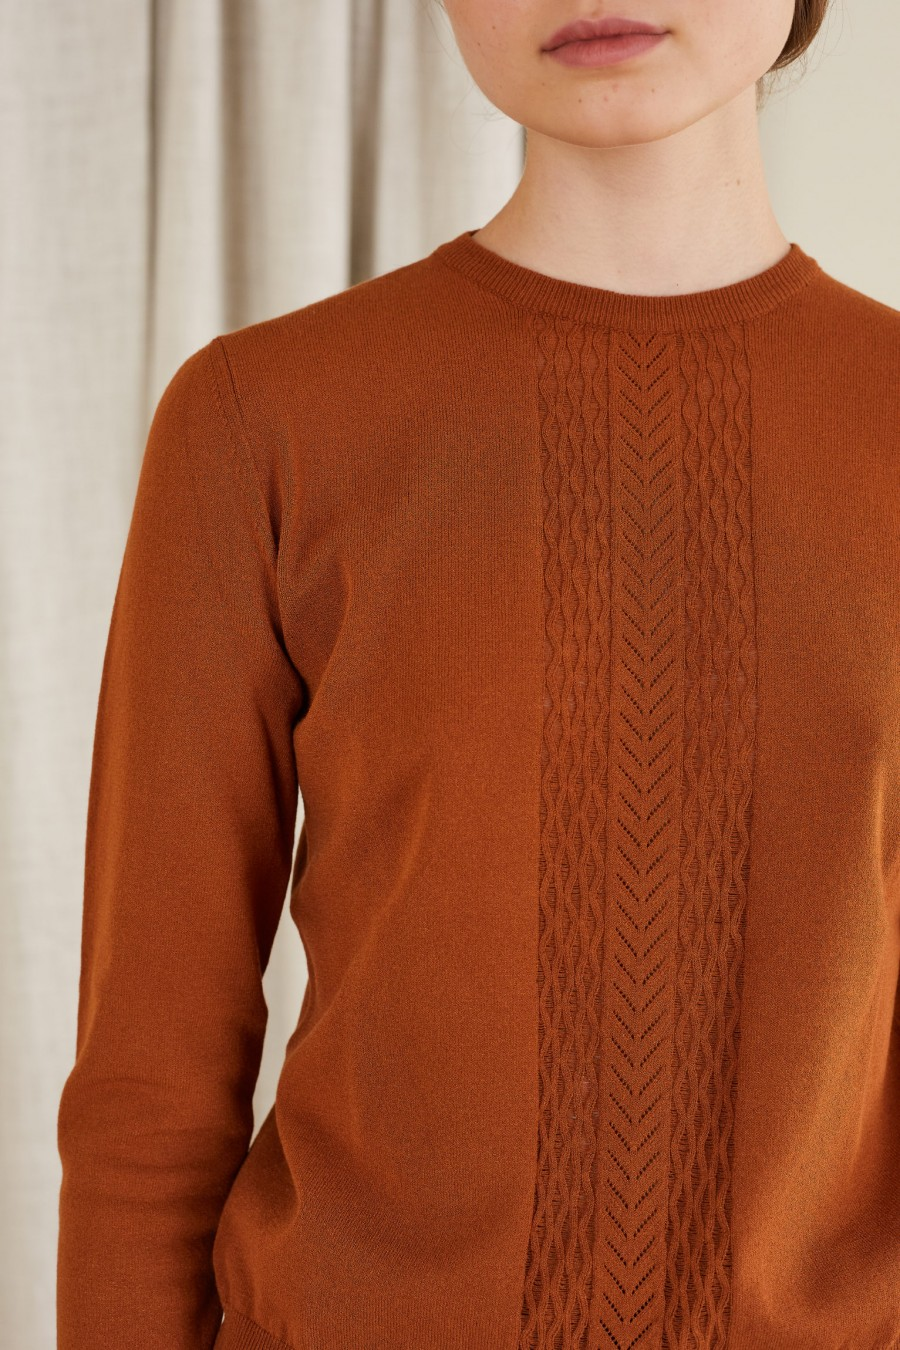 jumper with scalloped edges and cuffs